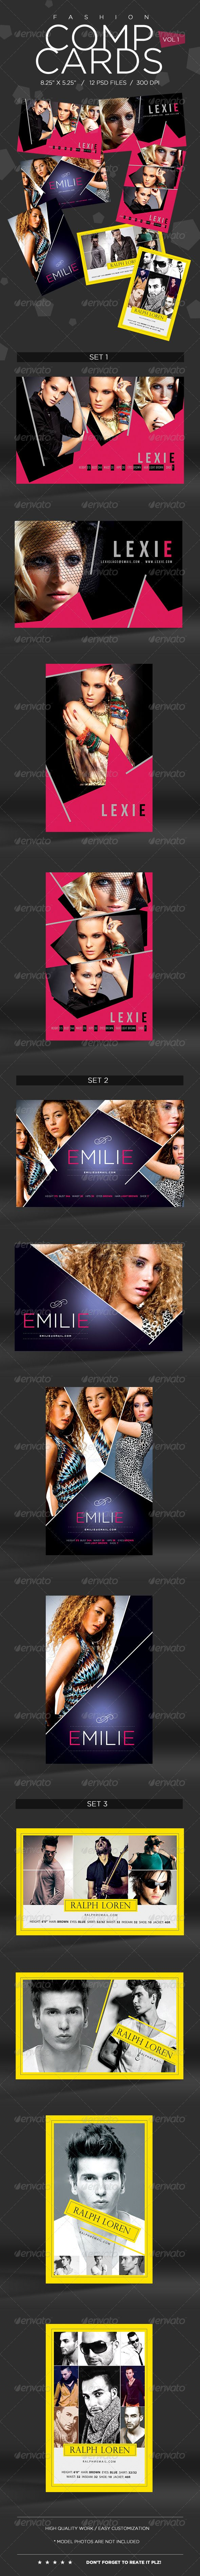 """Model Comp Card Template Kit Vol1  #GraphicRiver         SPECIFICATIONS: 1) Dimensions: 8.25"""" by 5.25"""" in size with bleeds 2) Resolution: 300 dpi CMYK / ready for print 3) Editable fonts/text 4) Easy to change colors 5) JPEGS included 6) Properly Layered 12 Photoshop Files 7) Help file included  color options / different styles  FONTS USED: 1) Bebas Neue 2) Agency FB 3) Gotham 4) Perpetua Titling MTe 5) Myriad Pro (System font)"""